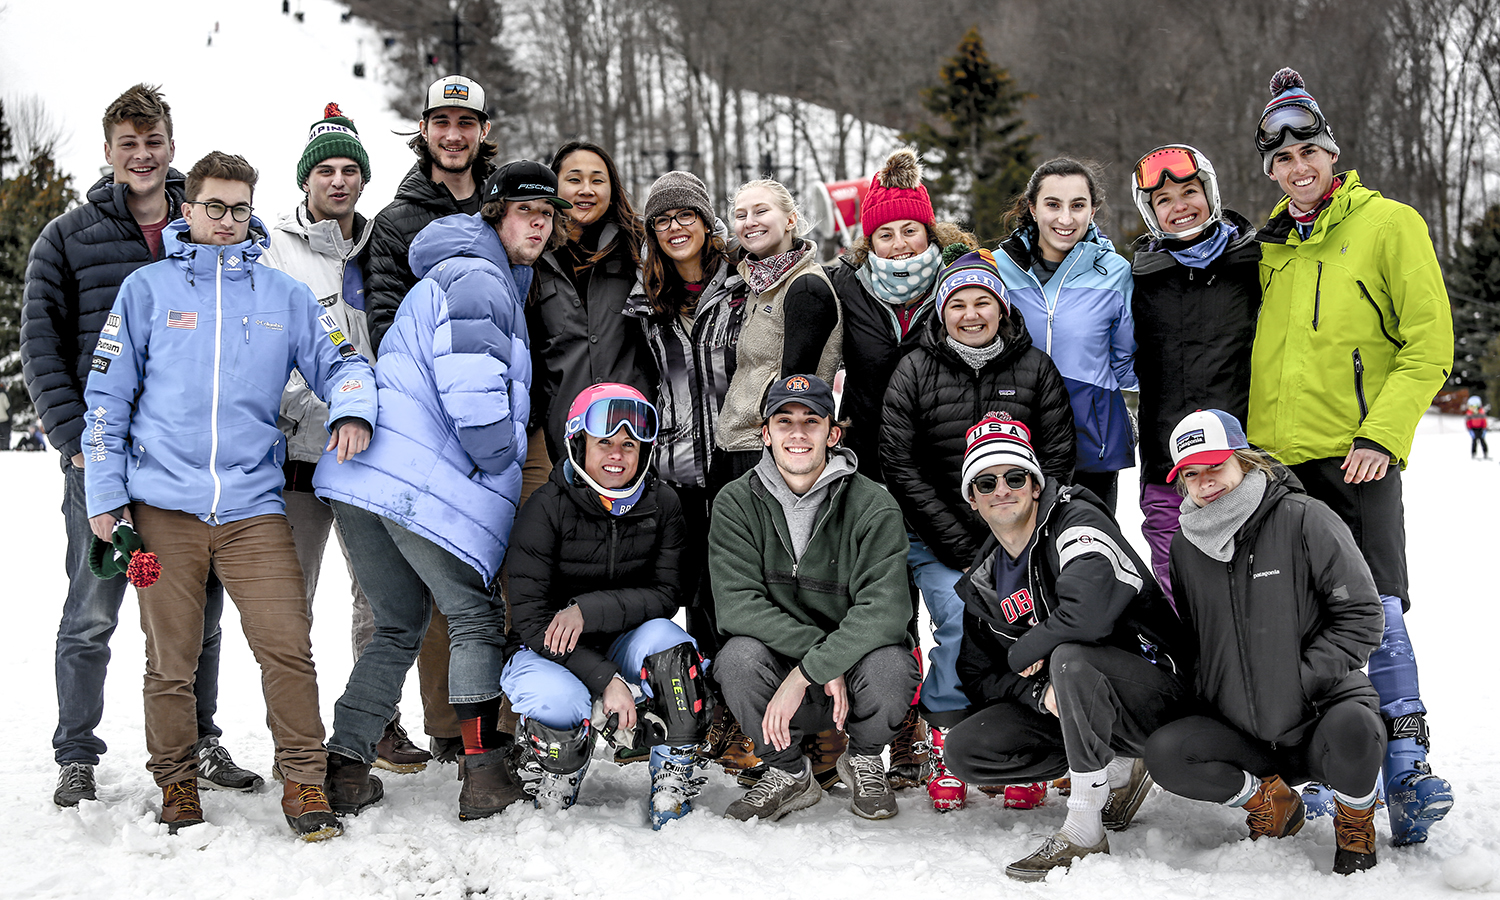 Members of the HWS Alpine Ski Team gather for a group photo during USCSA Nationals at Greek Peak Mountain Resort in Cortland, N.Y.